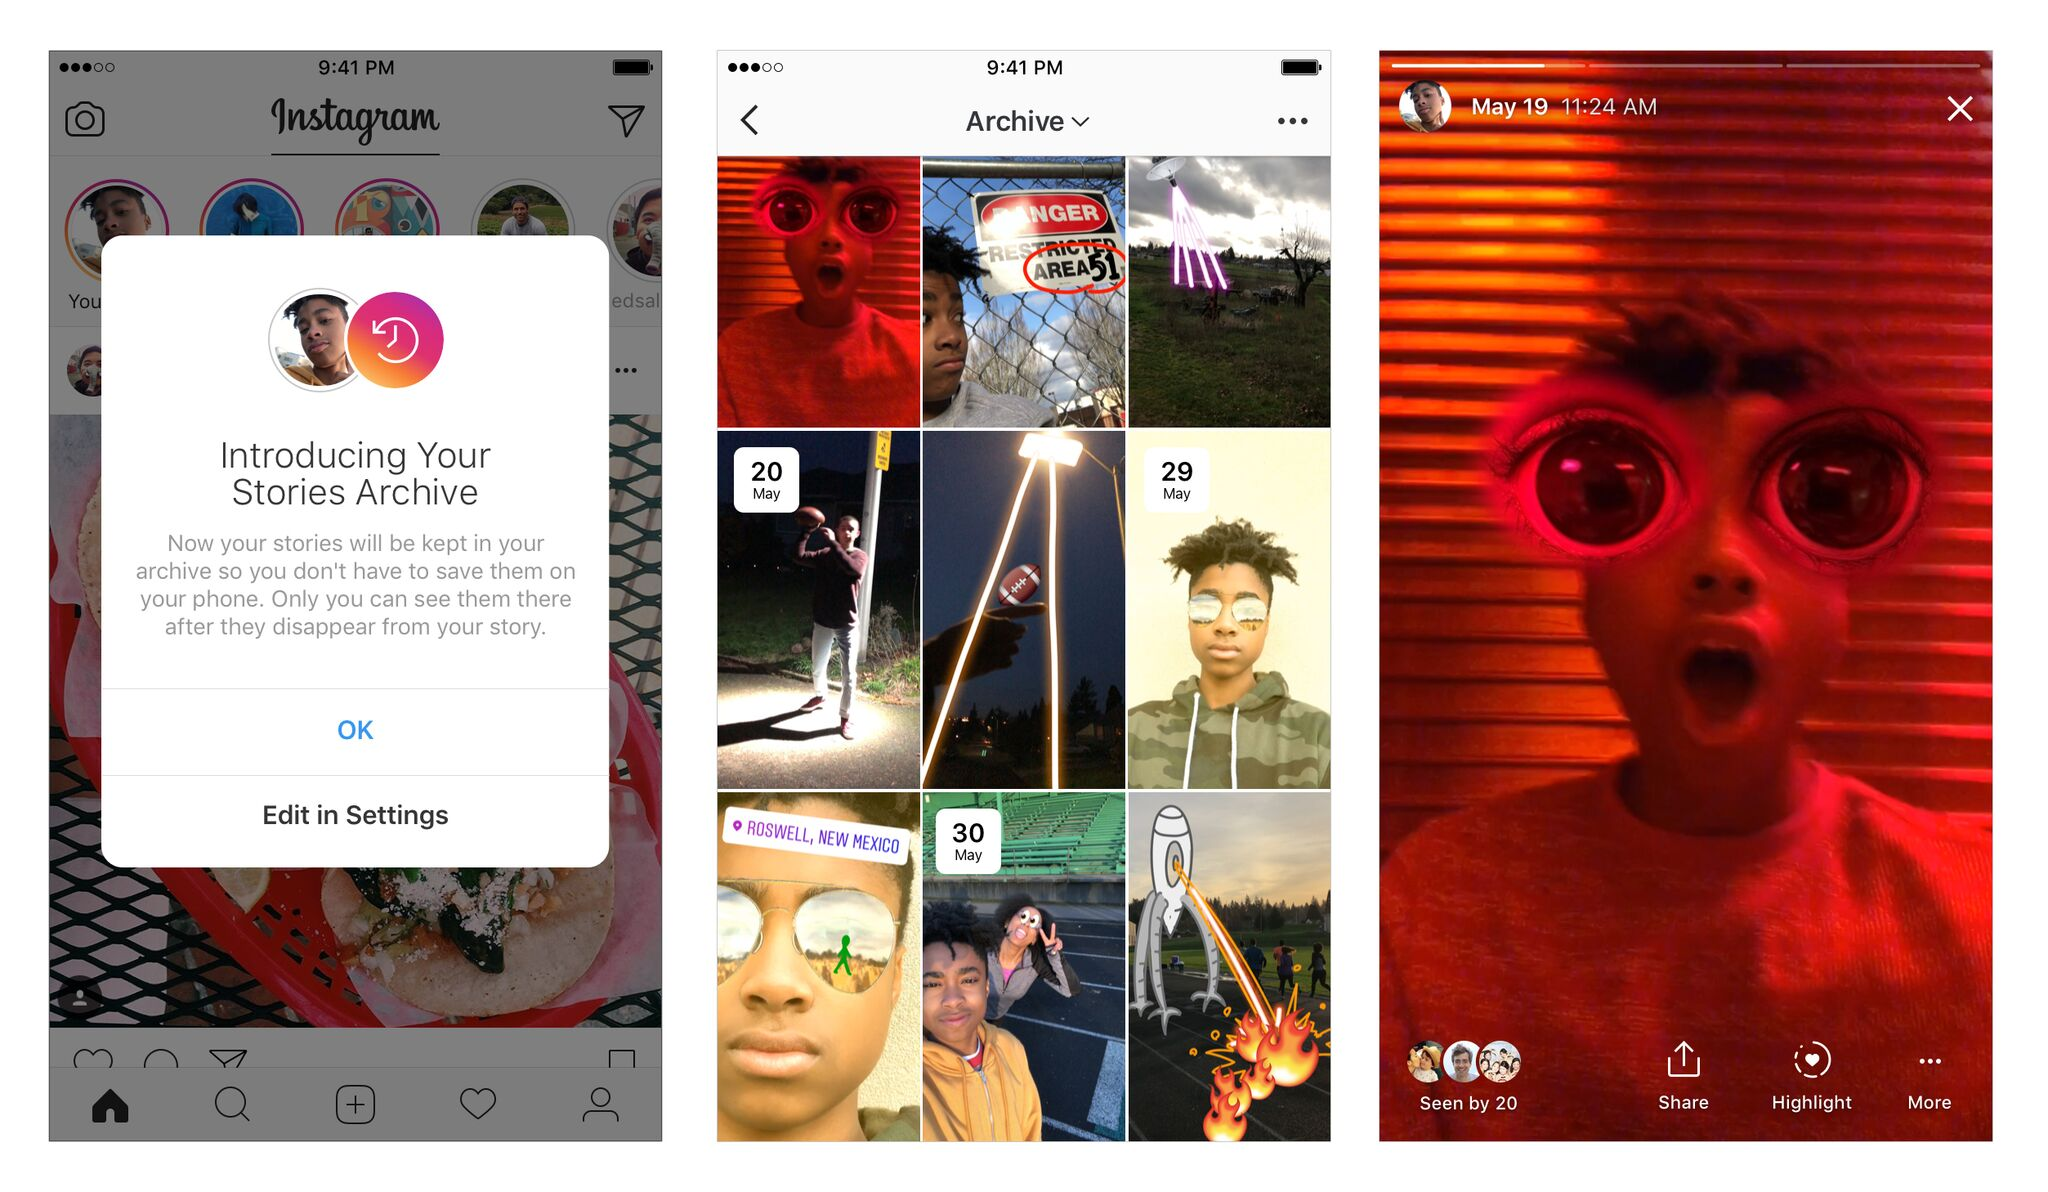 Instagram now lets you save Stories and highlight your favorite ones